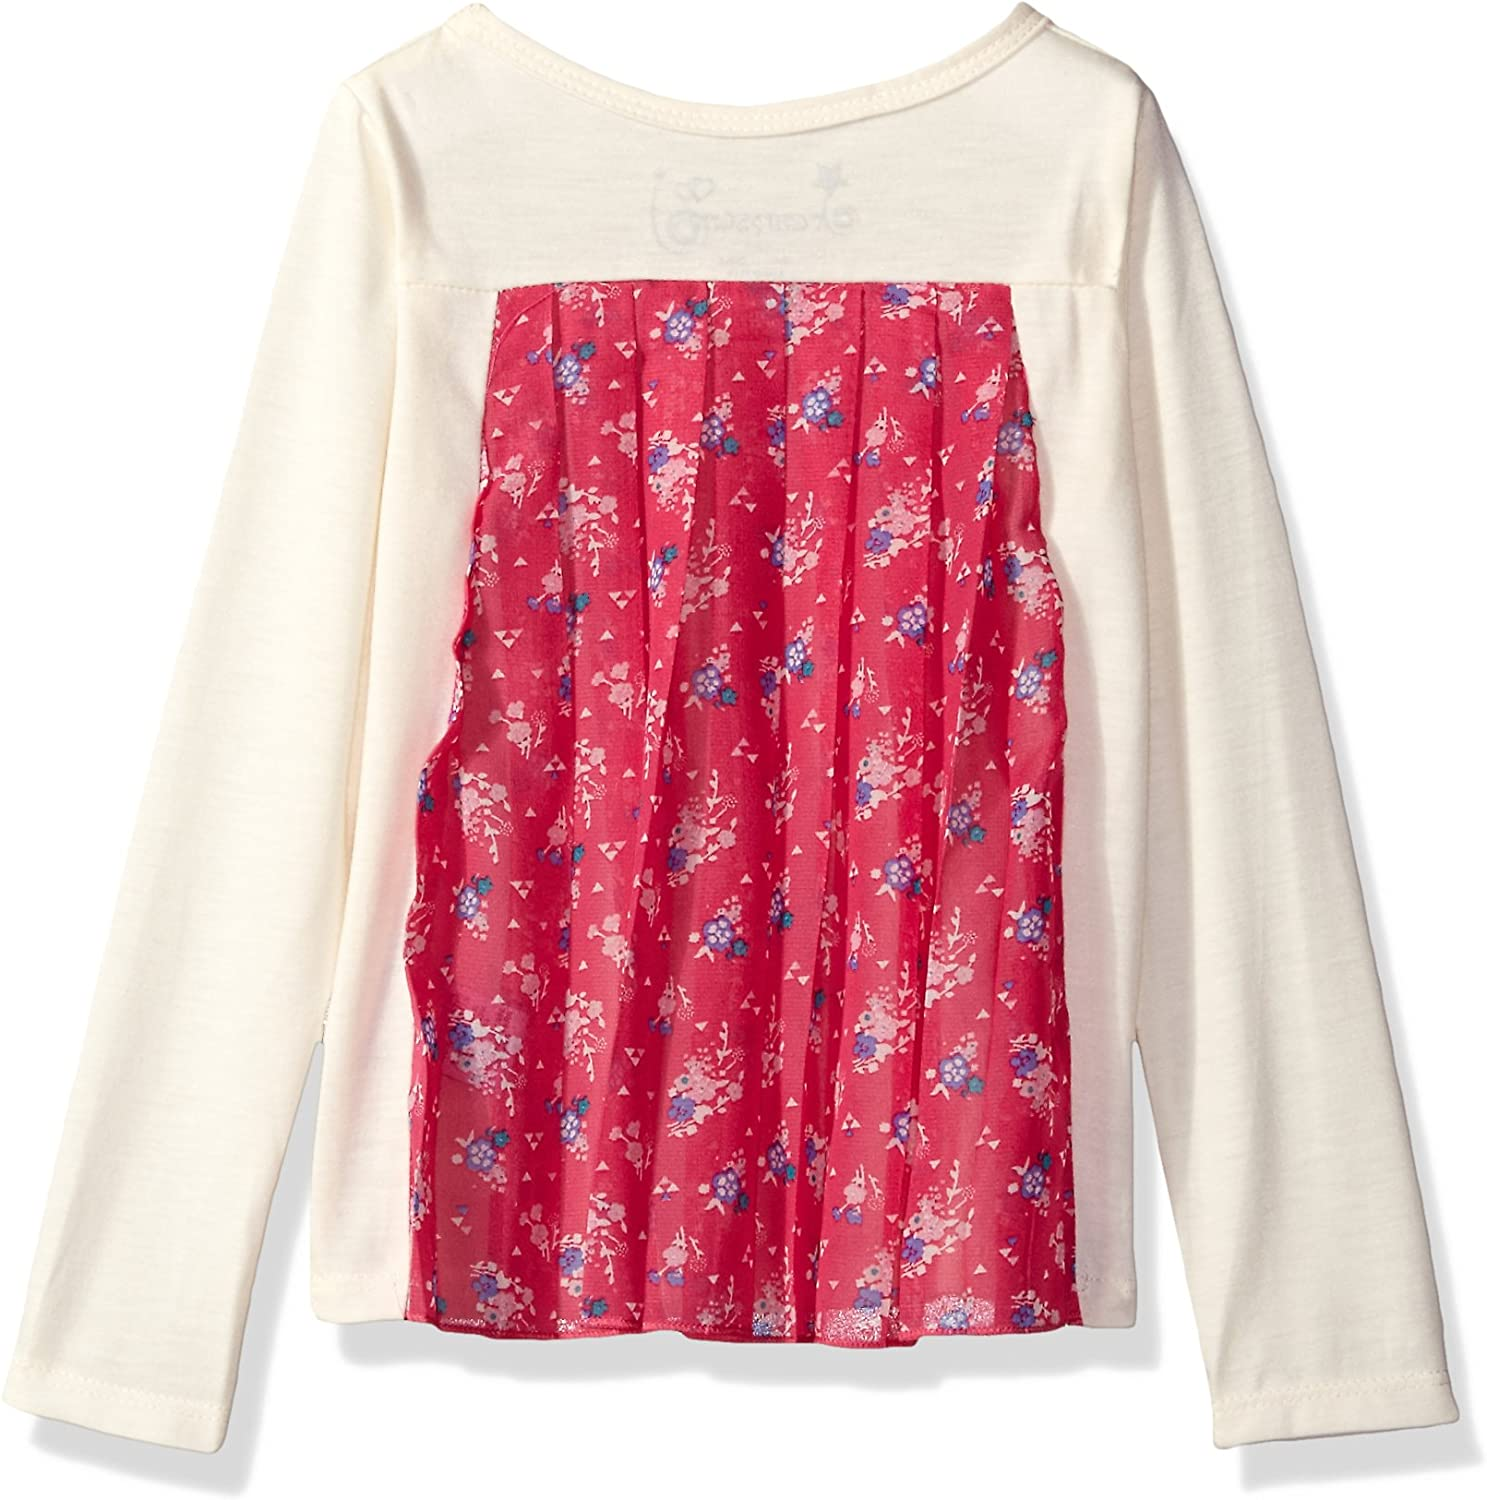 Dream Star Girls L//s Screen Top with Pleated Floral Chiffon Back